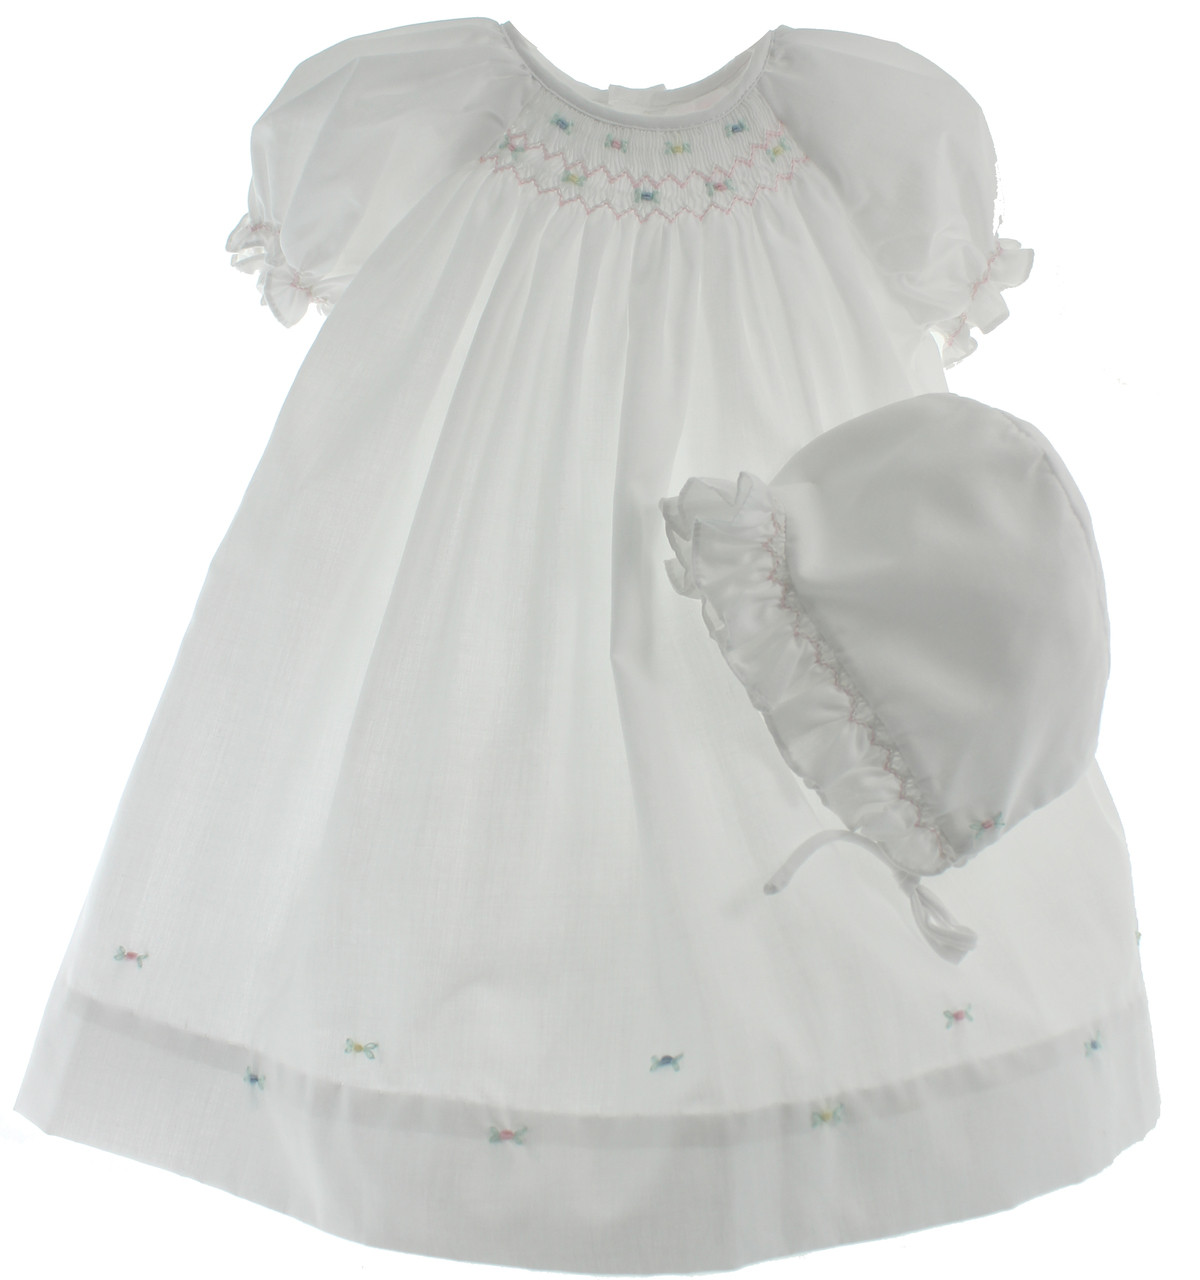 57a620820 ... Newborn Girls White Smocked Day Gown with Bonnet - Petit Ami. Loading  zoom